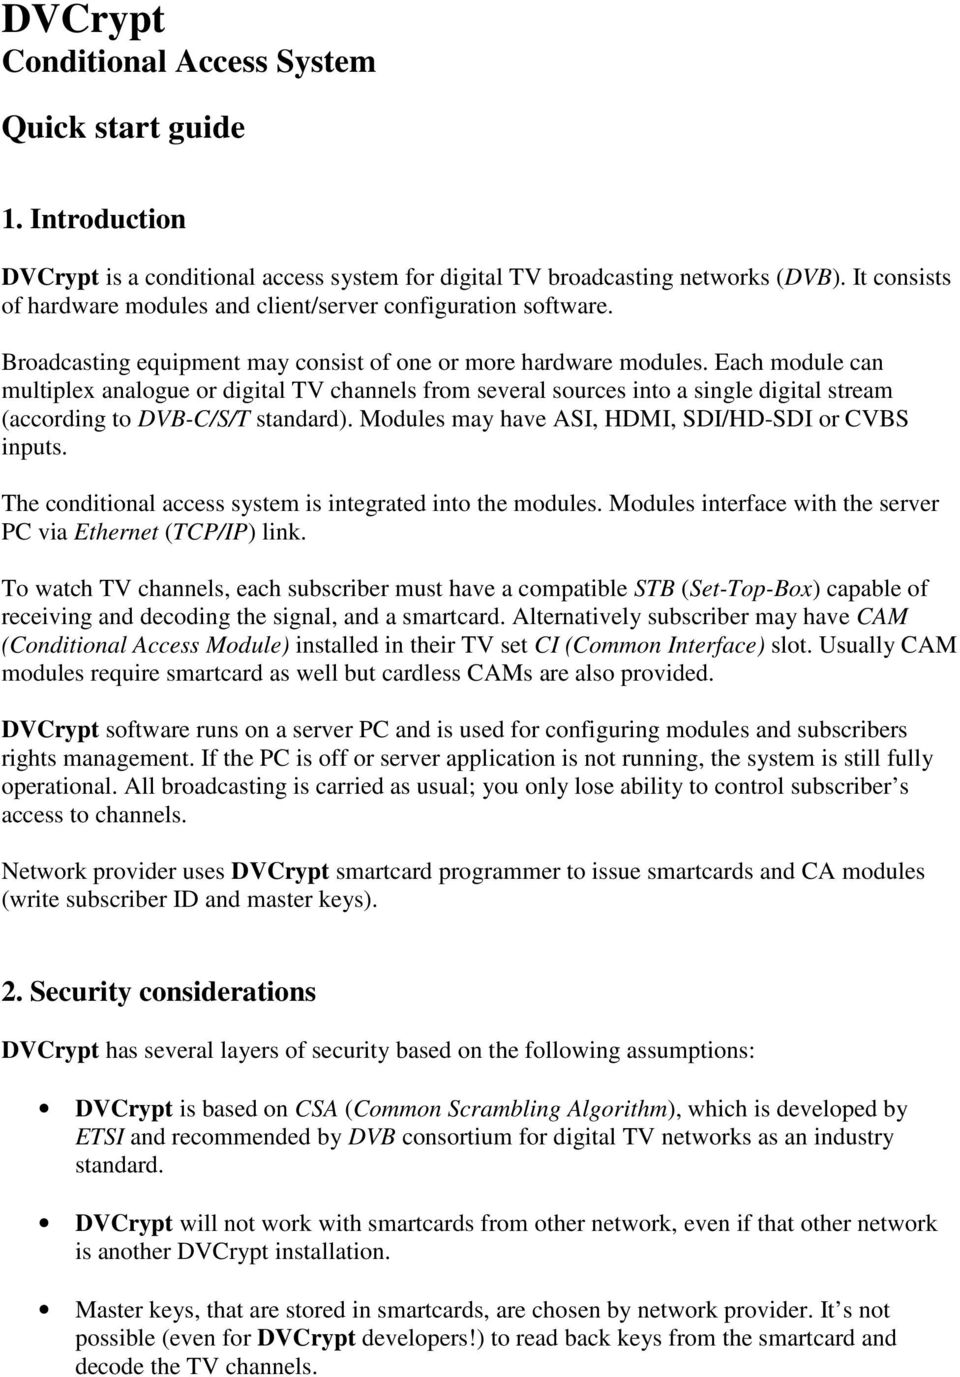 DVCrypt Conditional Access System - PDF